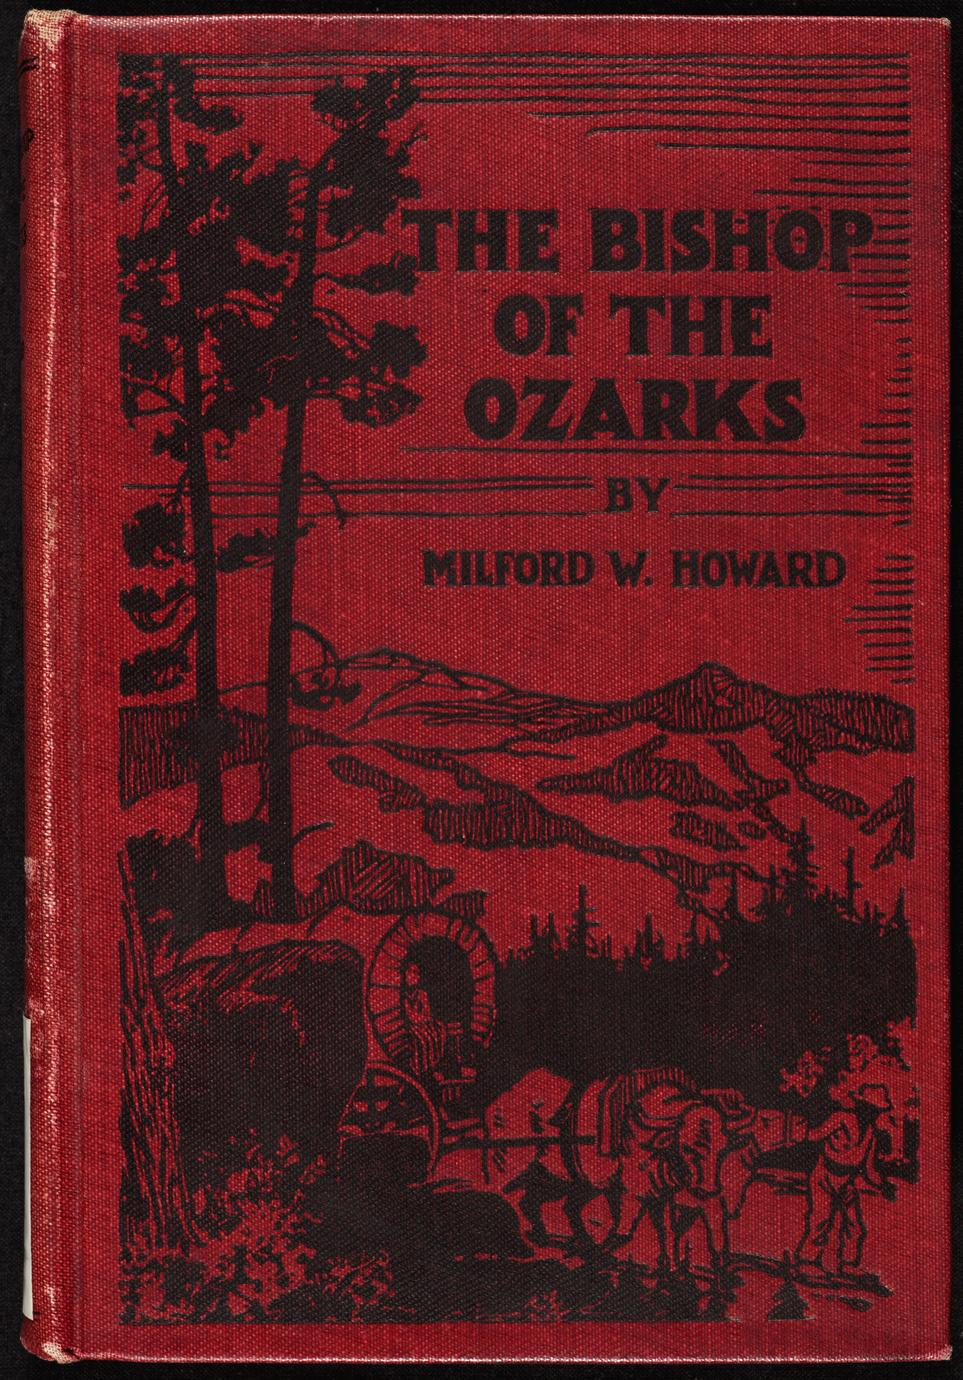 The bishop of the Ozarks (1 of 2)